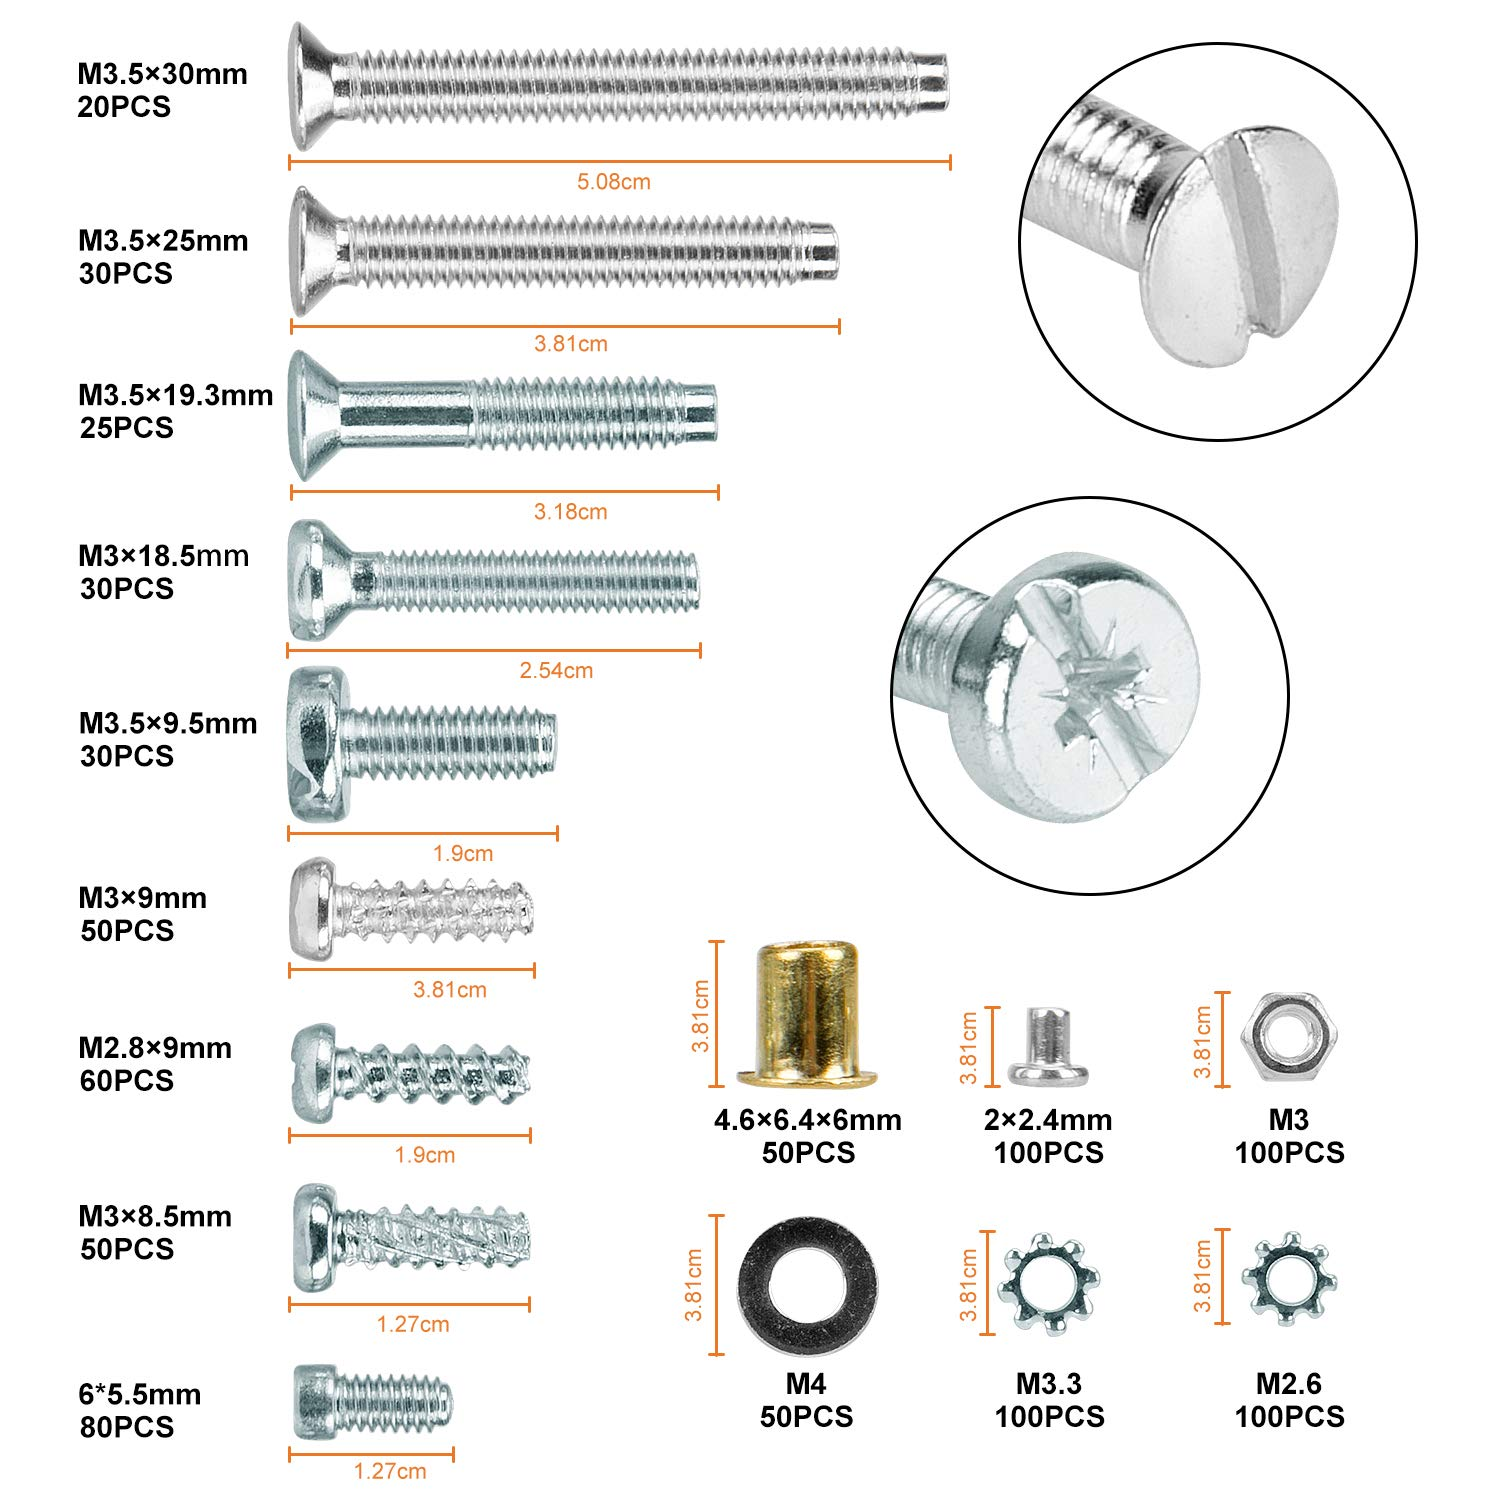 Repair Woodwork D053 WELLOCKS Screws washers Assortment Set 875 PCS M2.8 M3 M3.5 Self Tapping Machine Screw Carbon Steel with External Tooth Star Lock Brass Eyelet and Rivet Mix Kit for Homemade